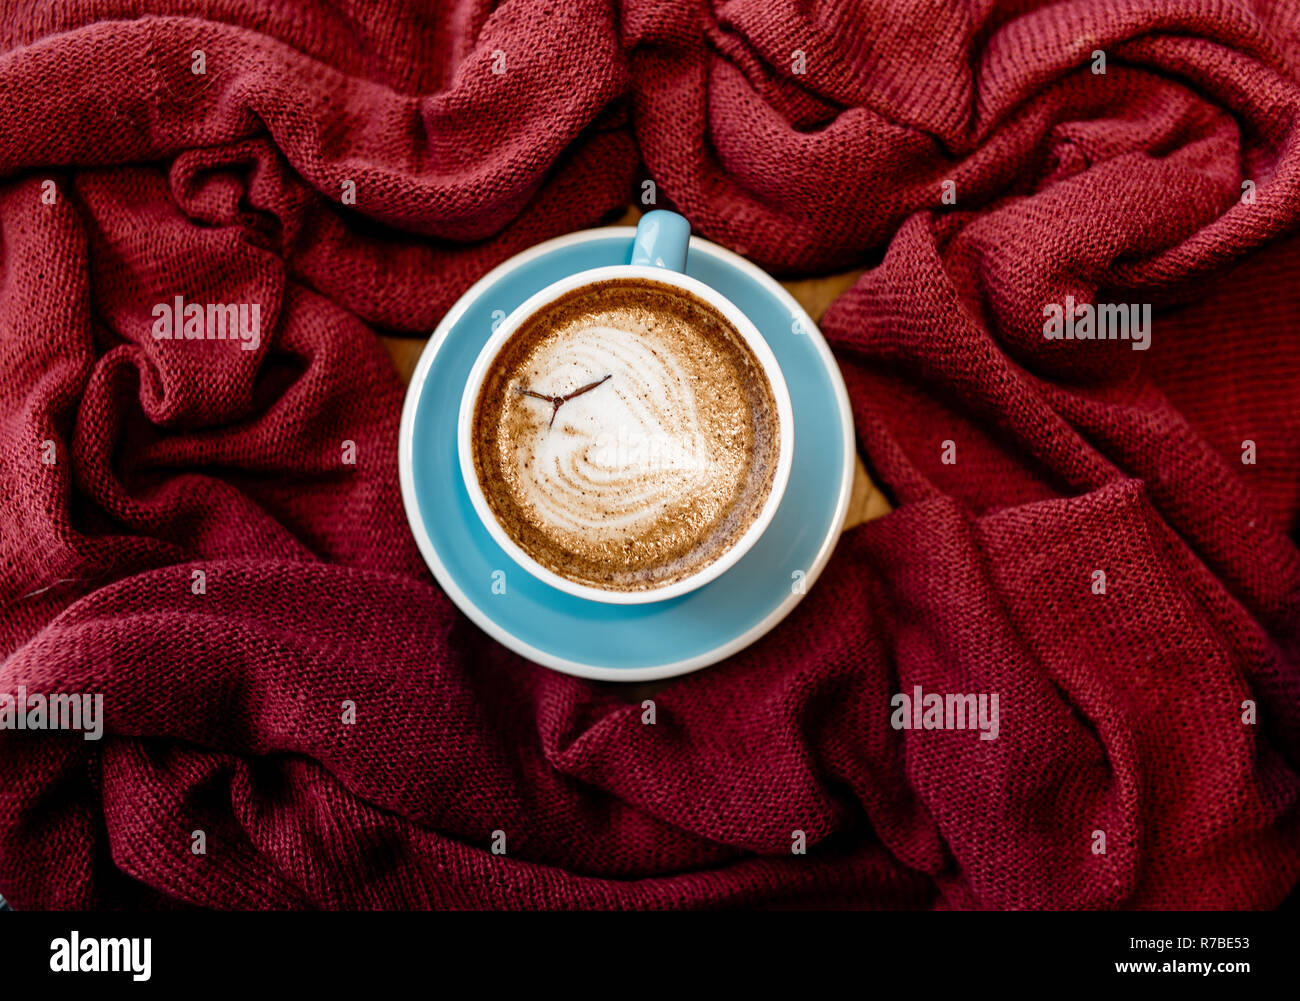 Vintage Background Of Coffee Food Photography For Design Latte Art On Cup Stock Photo Alamy